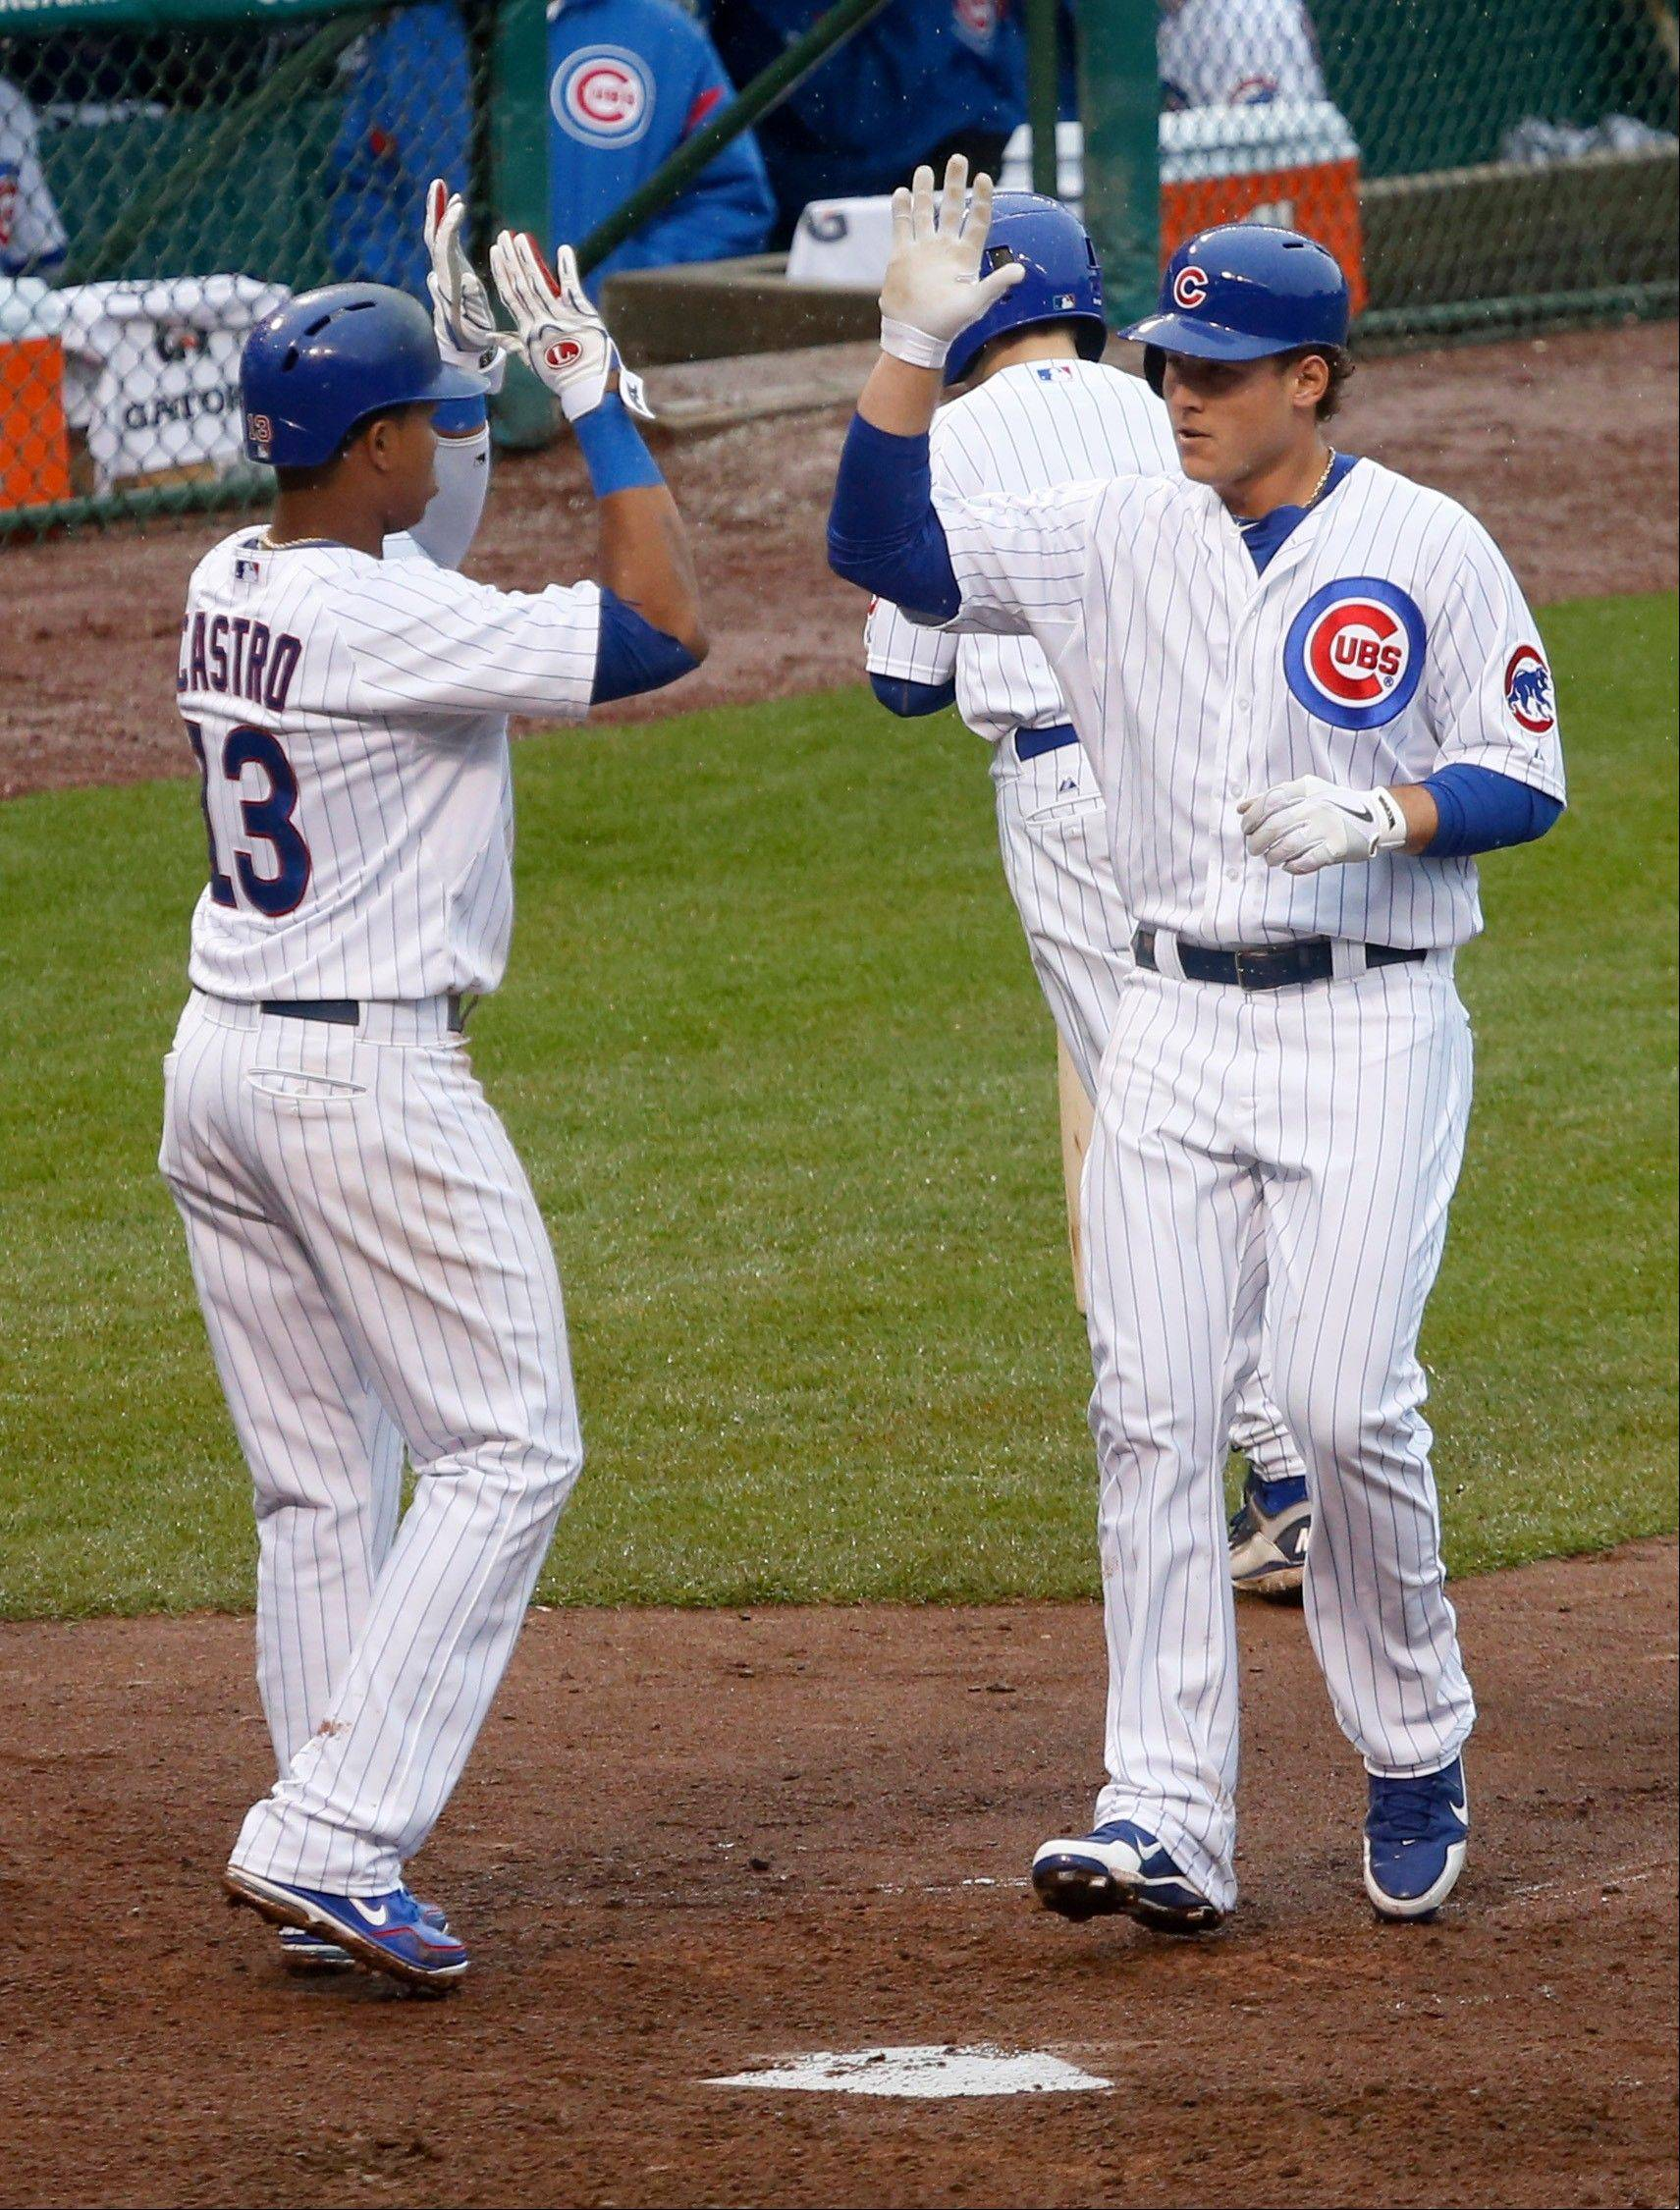 Chicago Cubs' Anthony Rizzo, right is greeted at home by Starlin Castro after the pair scored on Rizzo's home run off Texas Rangers starting pitcher Alexi Ogando during the third inning of a baseball game, Thursday, April 18 2013, in Chicago.